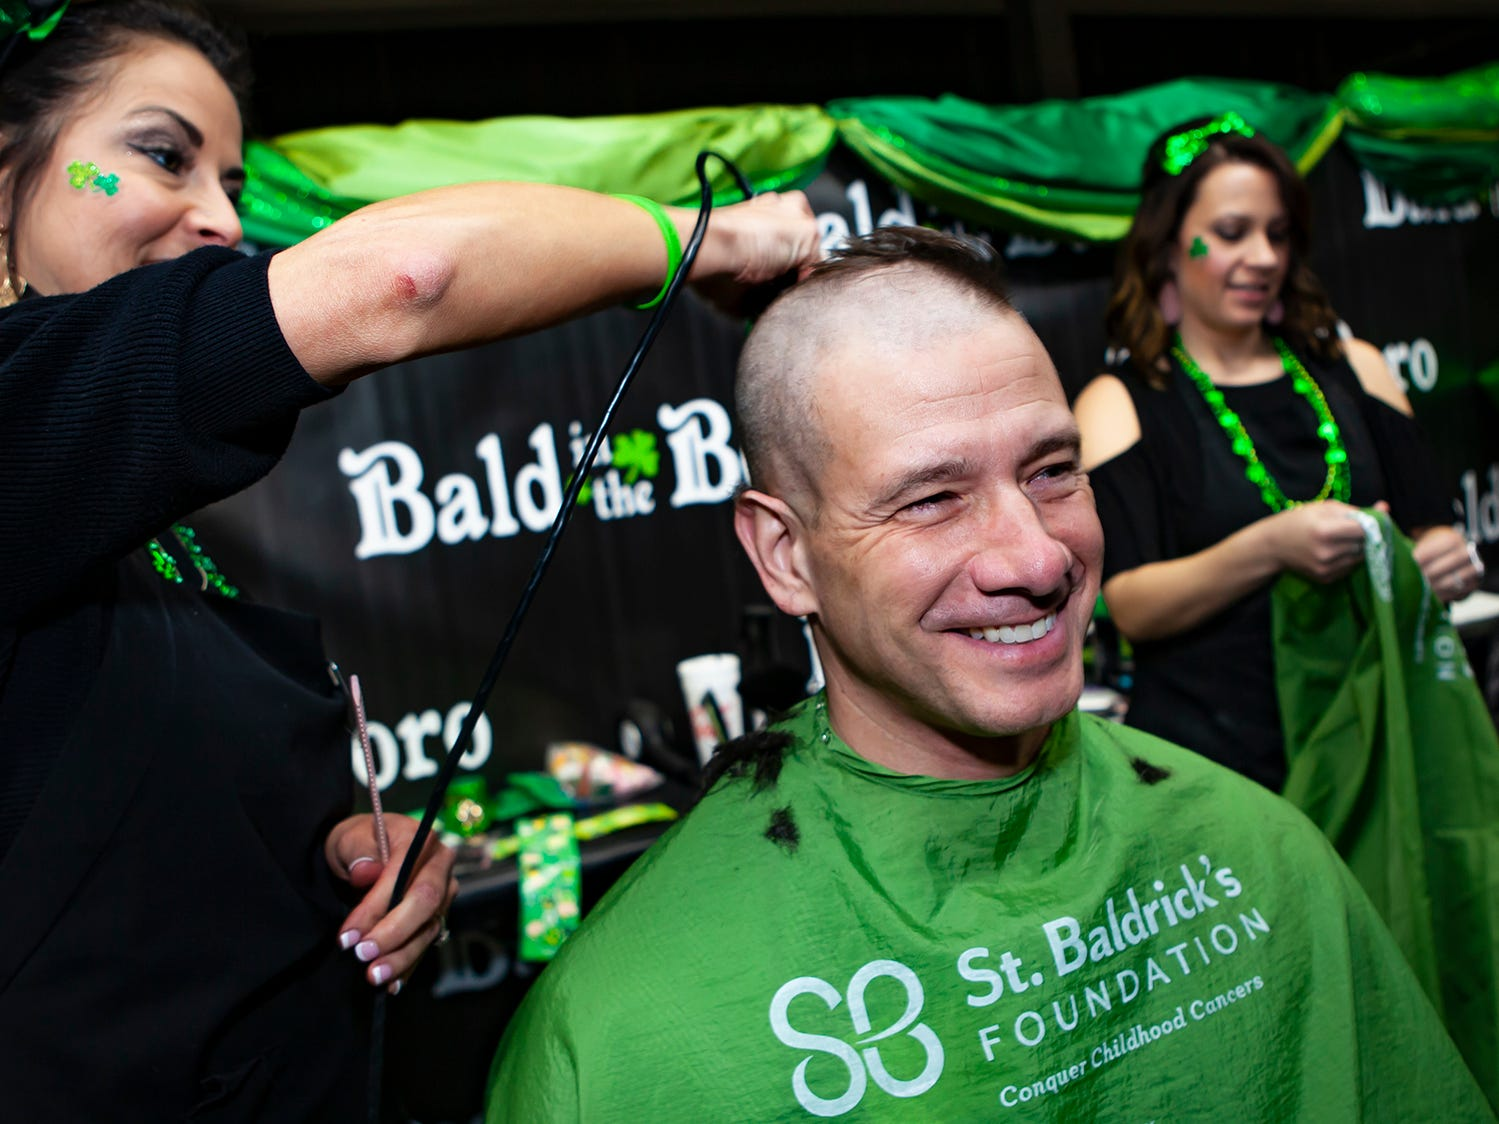 Murfreesboro City Councilman Ronnie Martin shaved his head at the ninth annual Bald in the Boro fundraiser for the St. Baldrick's Foundation. The event was held Friday, March 15, 2019 at Lanes, Trains and Automobiles in Murfreesboro.